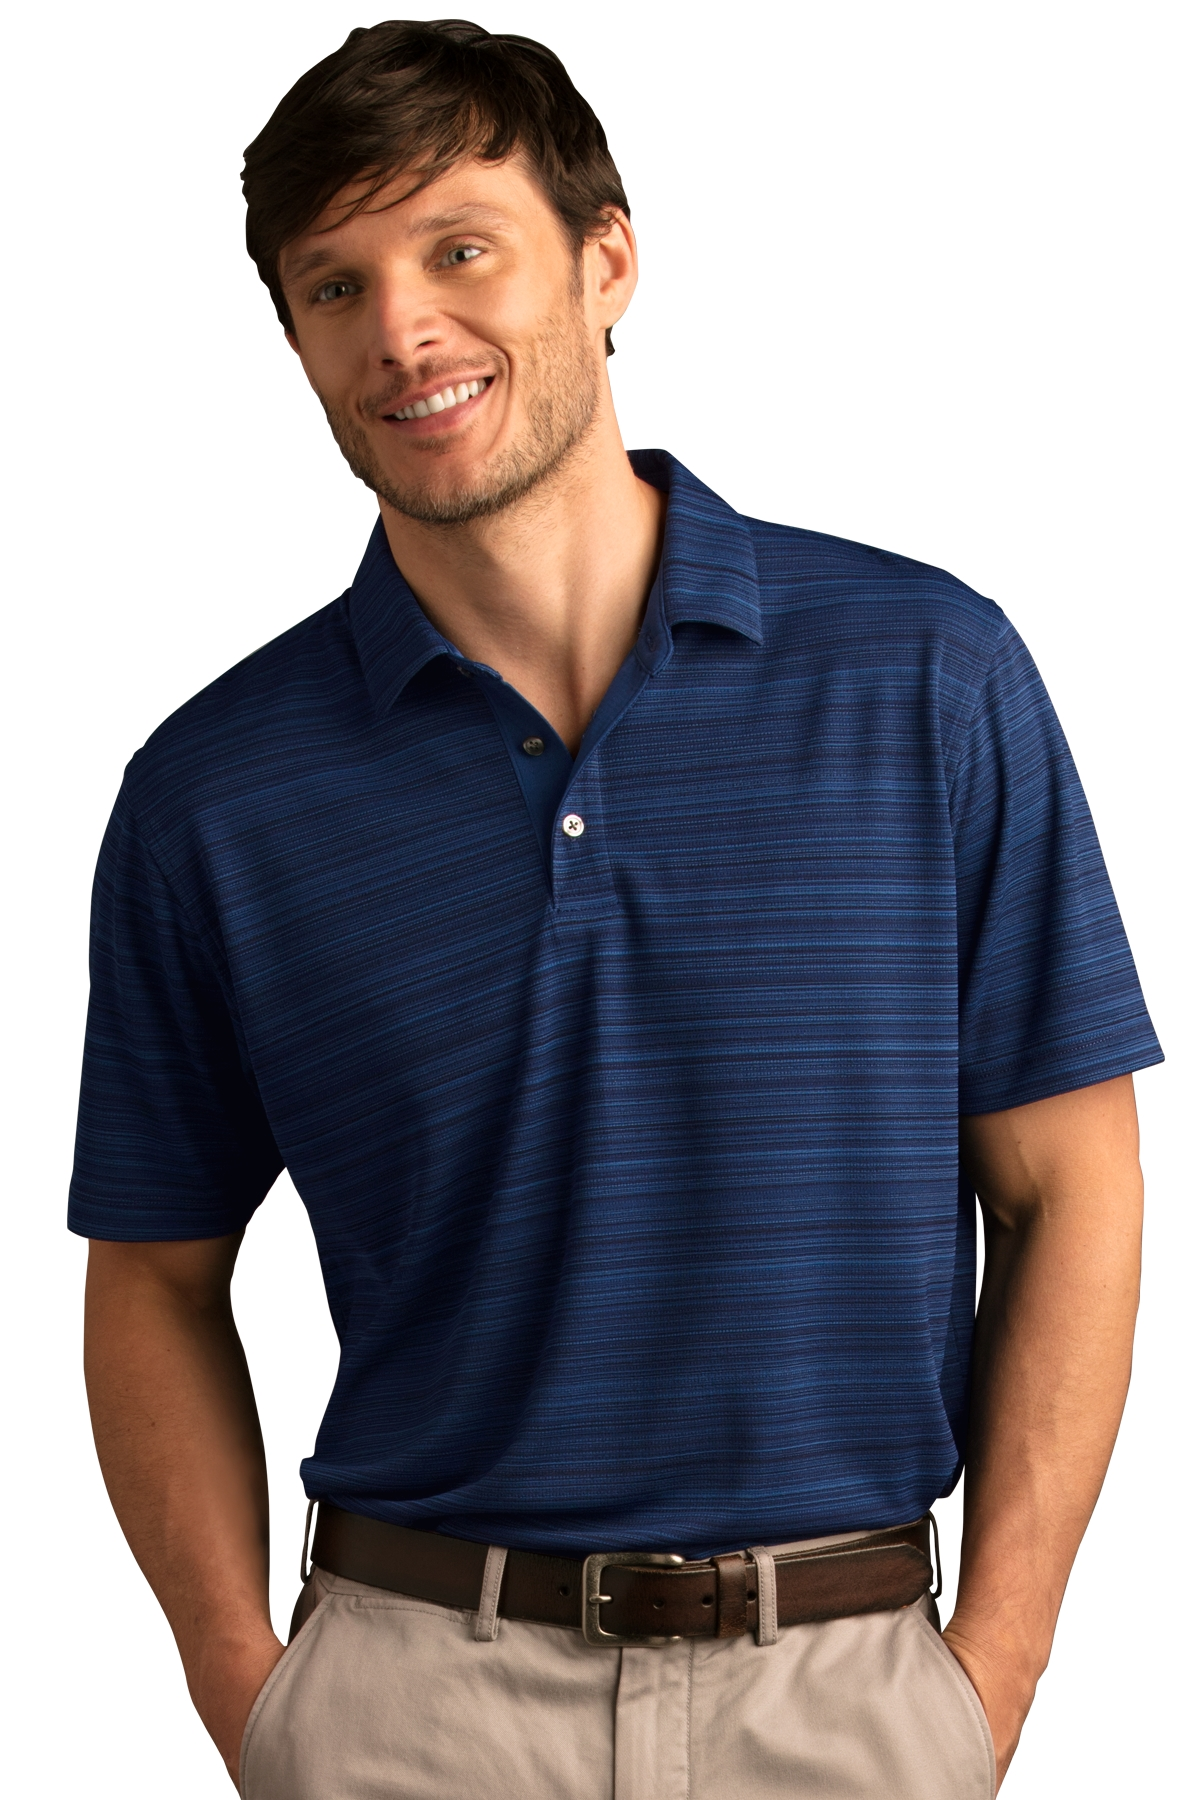 Vansport 2795 - Men's Strata Textured Polo